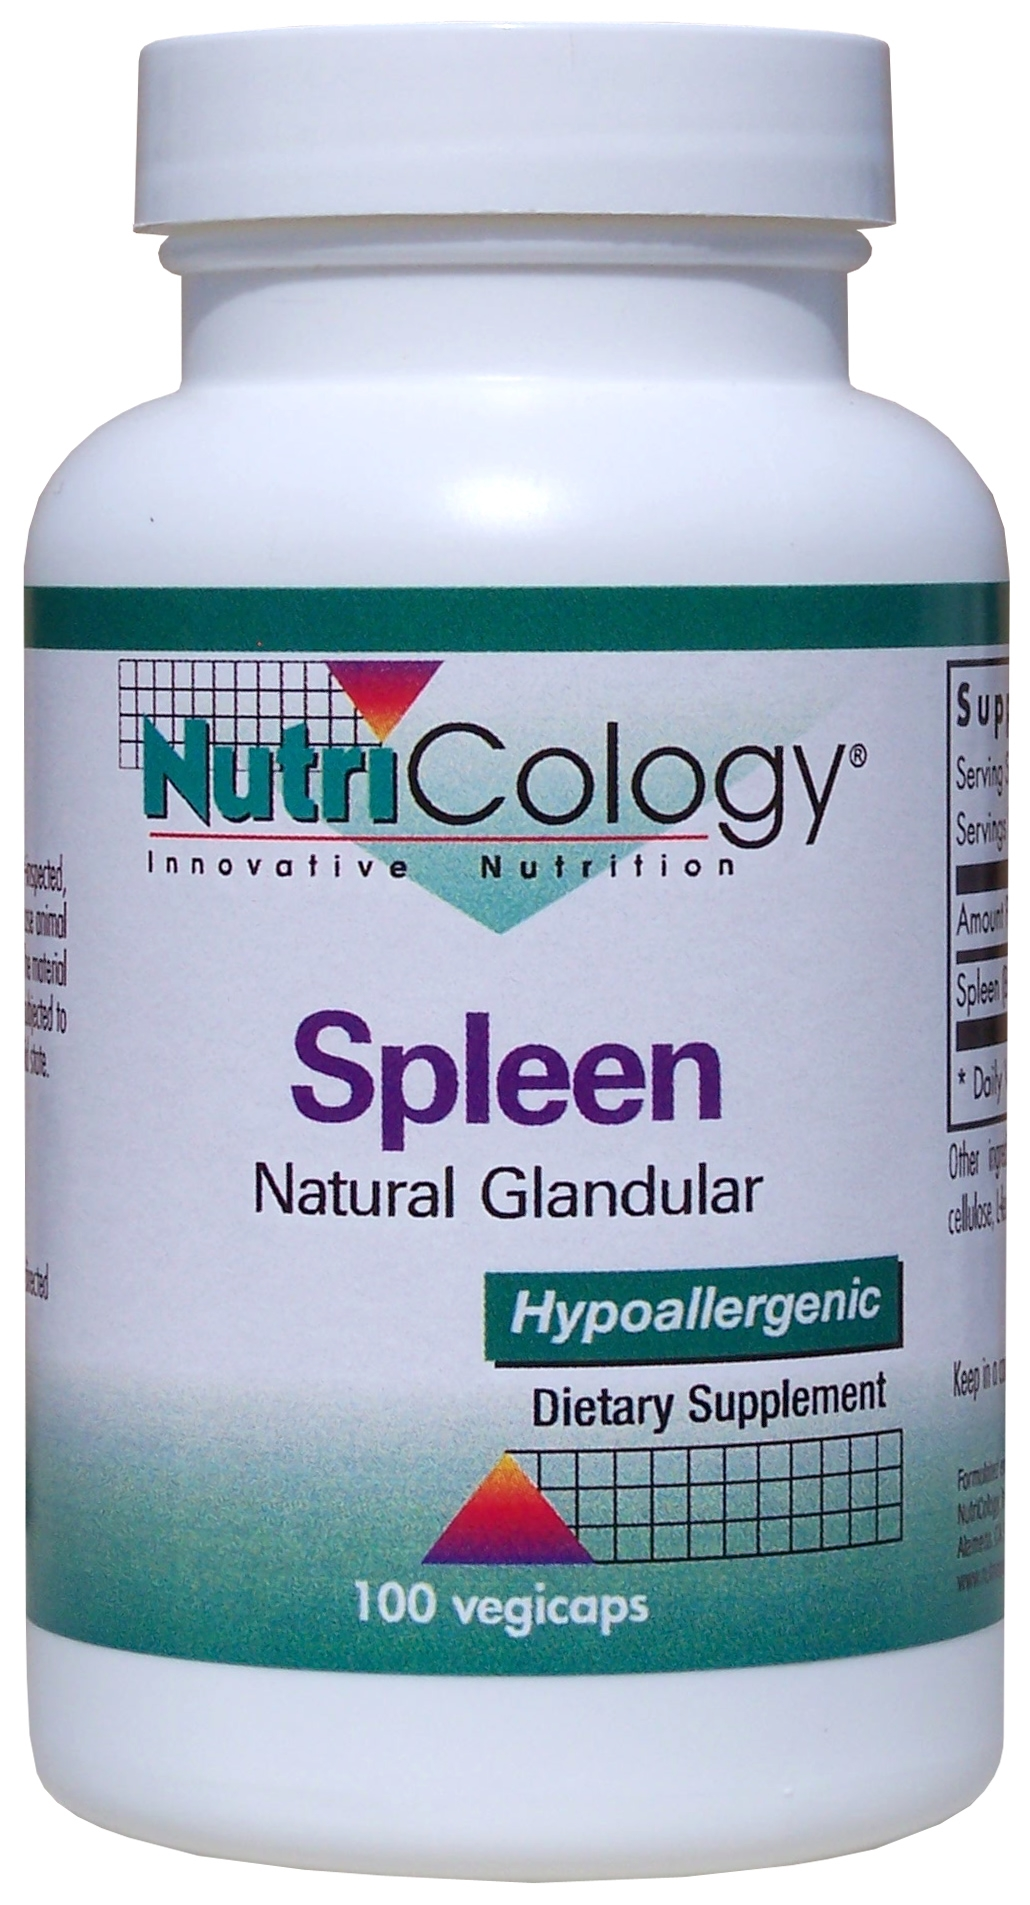 Spleen Natural Glandular 100 Vegicaps by Nutricology